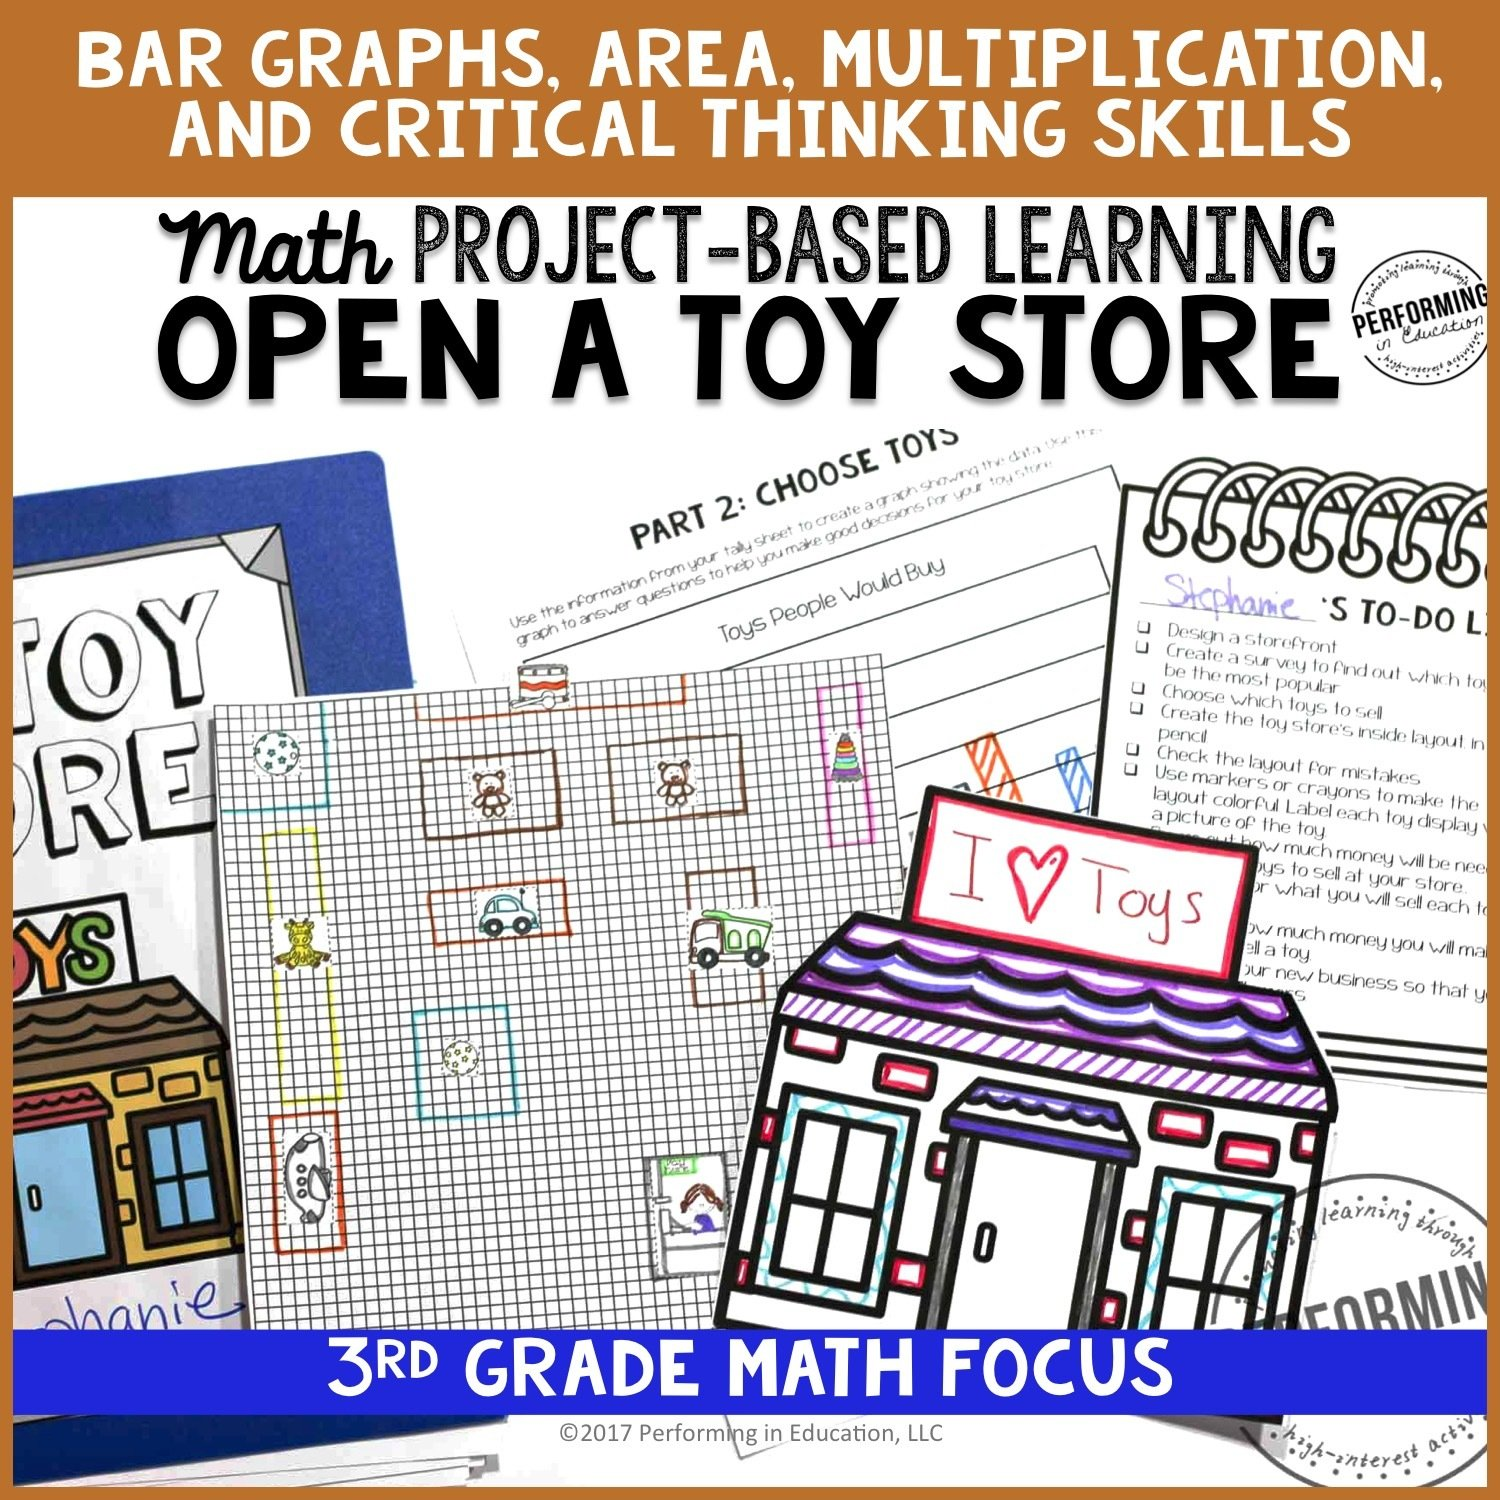 Math Project-based Learning for 3rd Grade: Open a Toy Store 00054